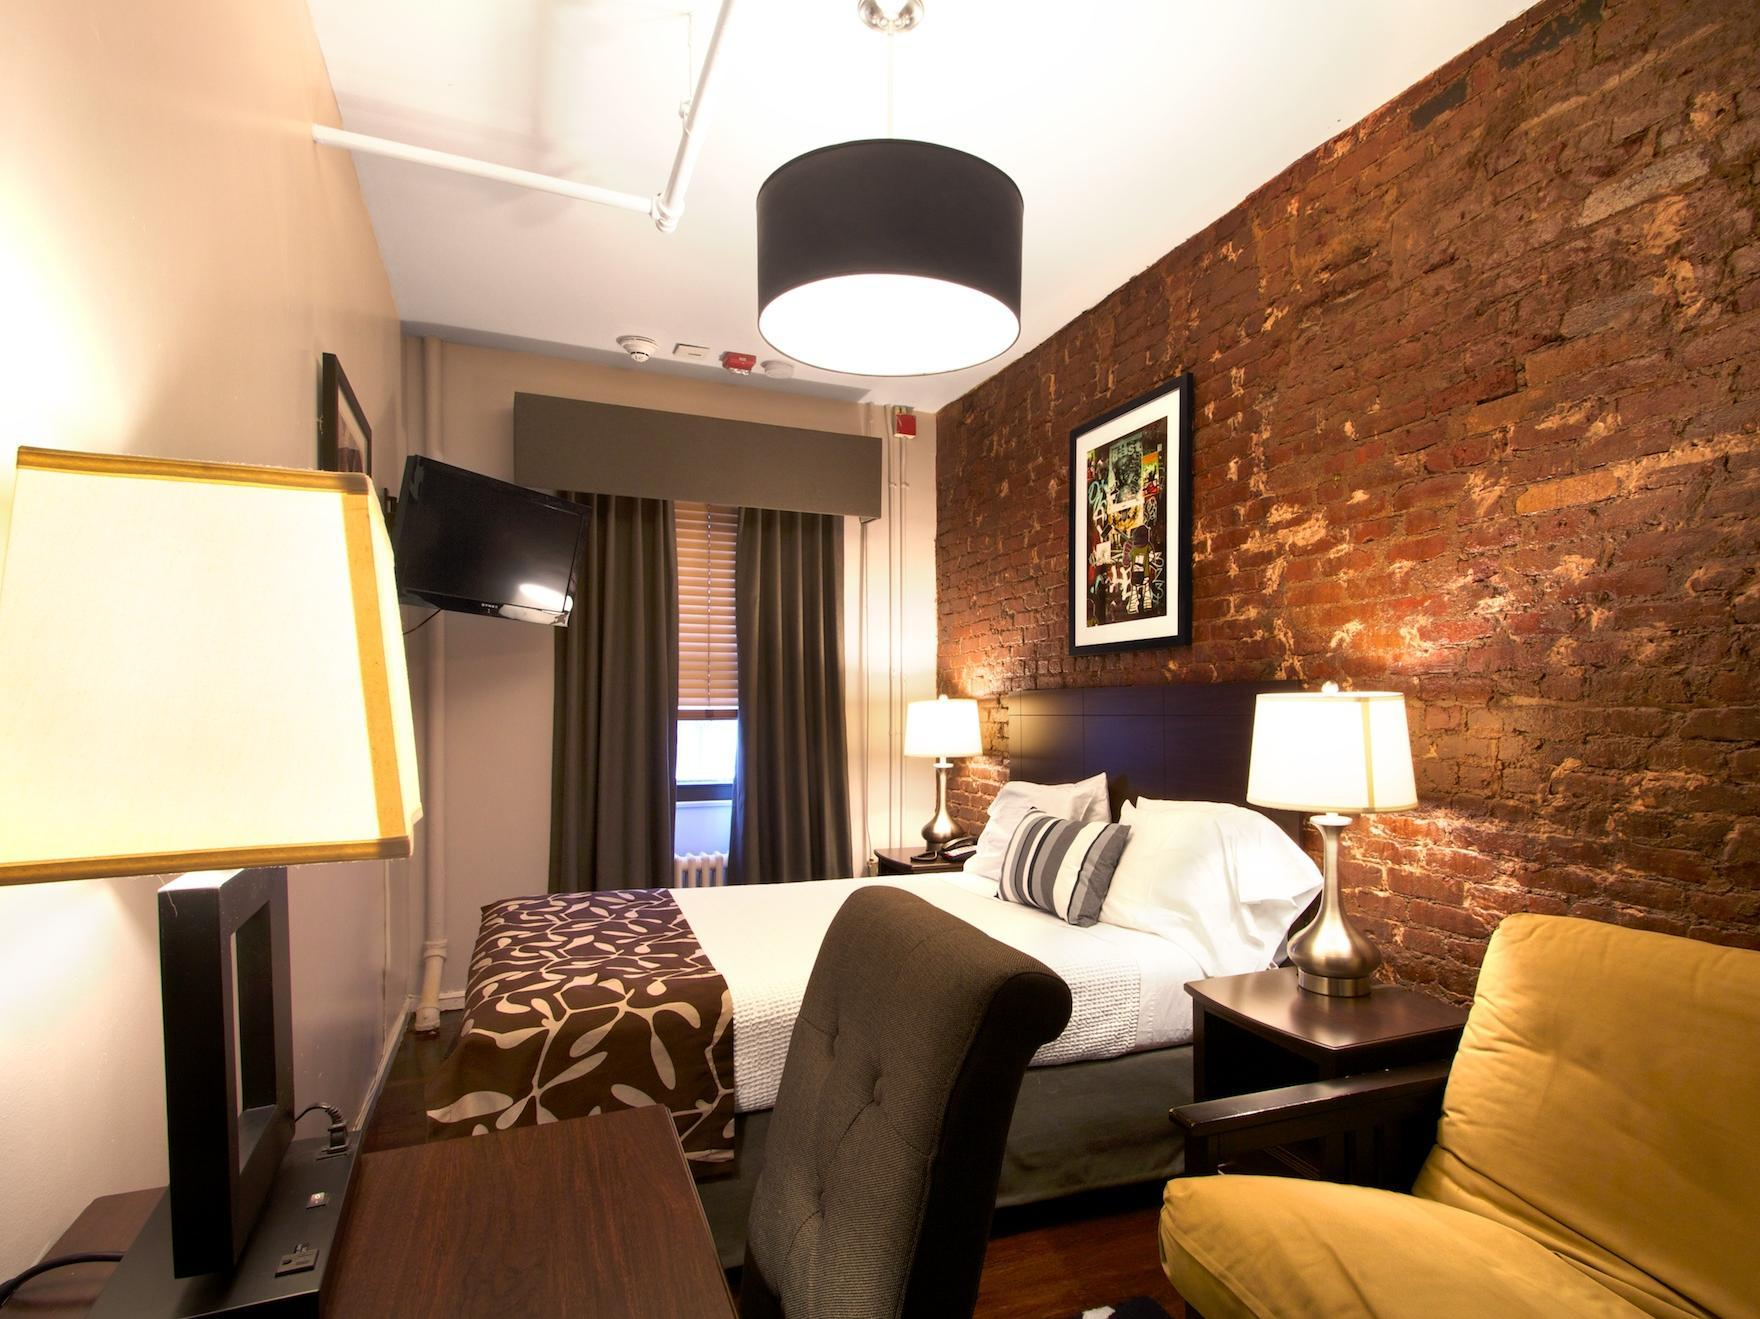 Hotel 309 - Hotel and accommodation in Usa in New York (NY)